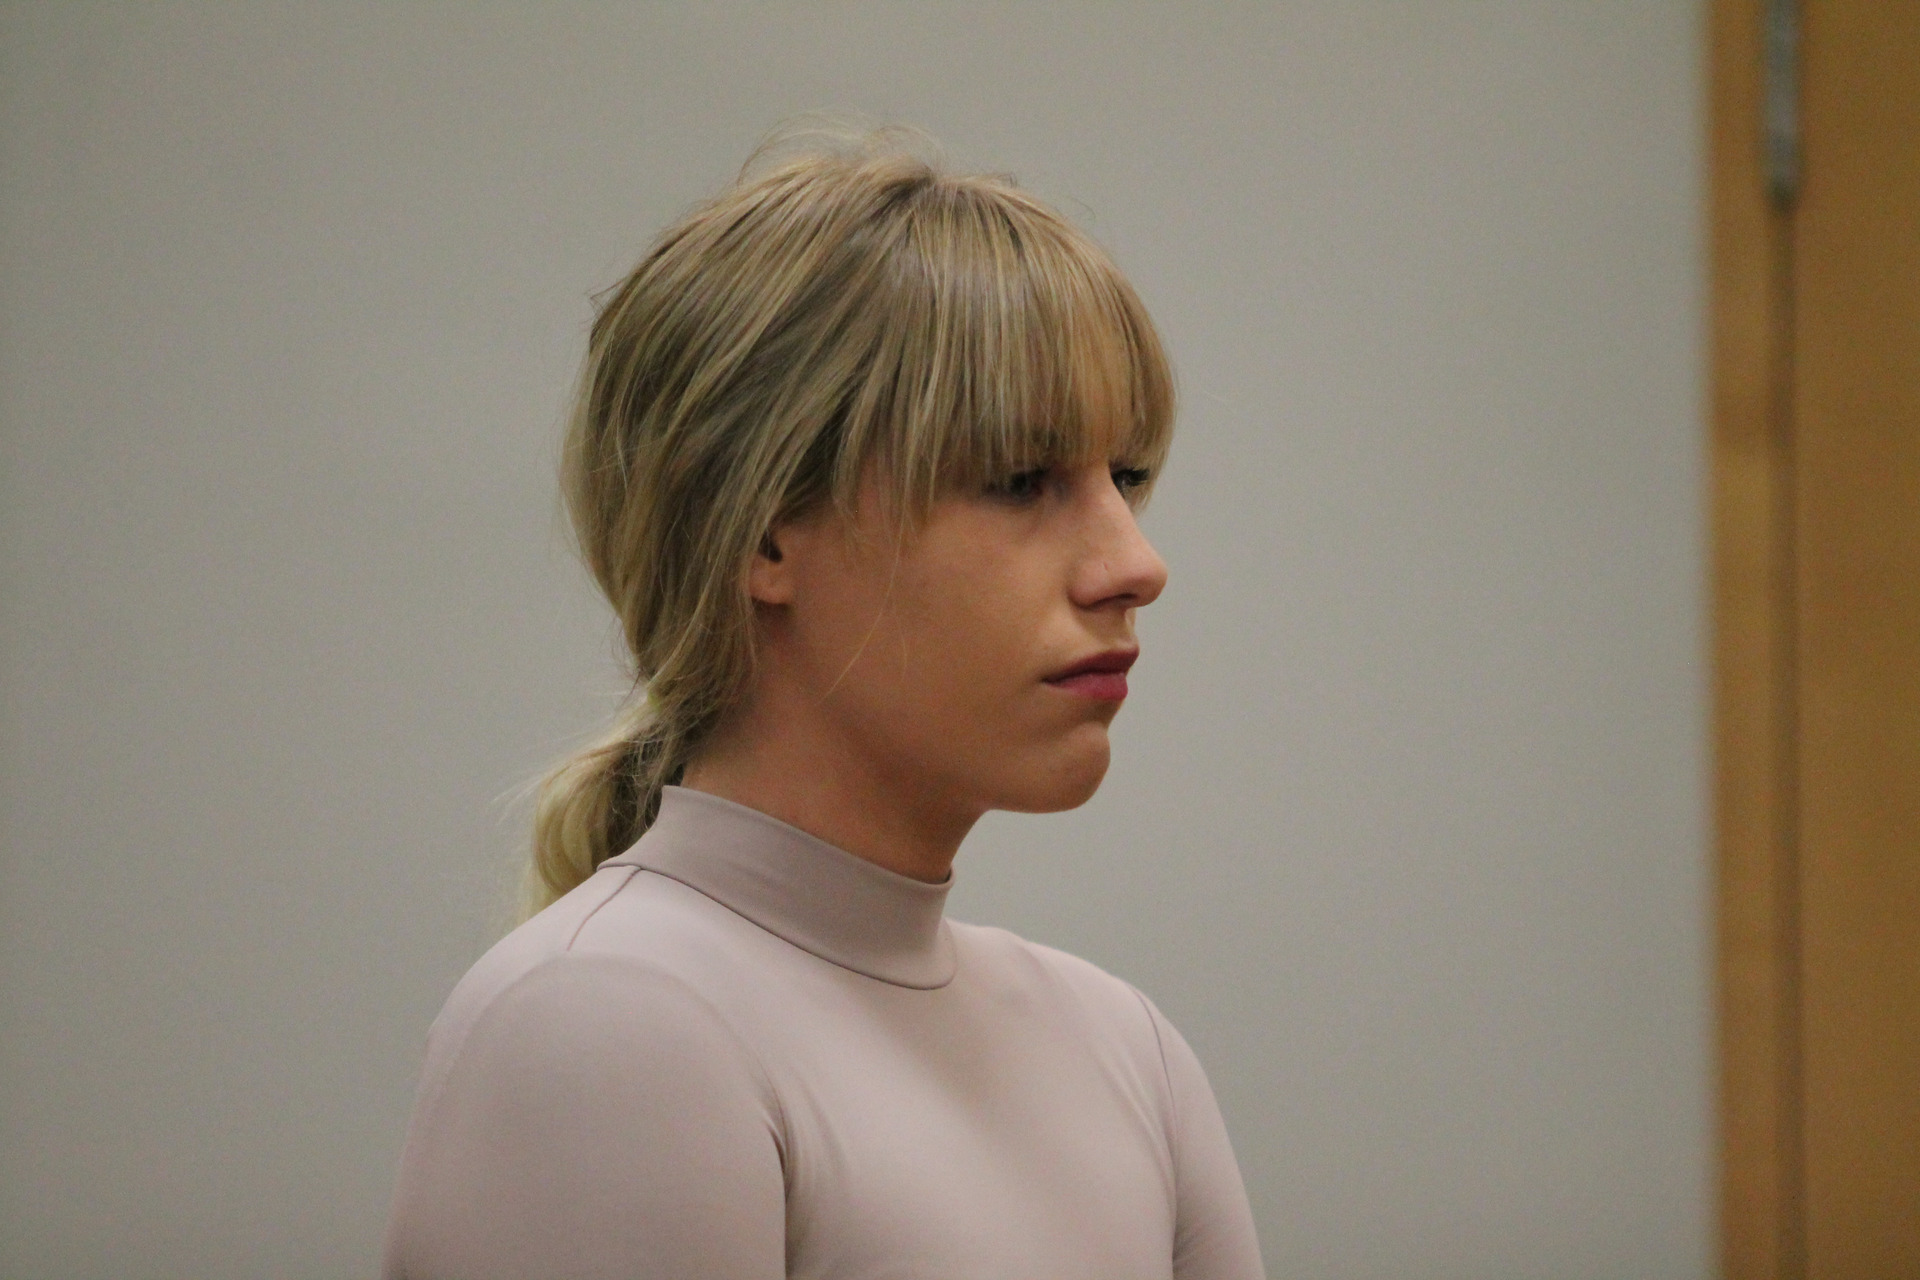 a06a70c406df Fatal hit-and-run  Rouxle Le Roux  s home detention sentence adequate for  an  accident  - NZ Herald